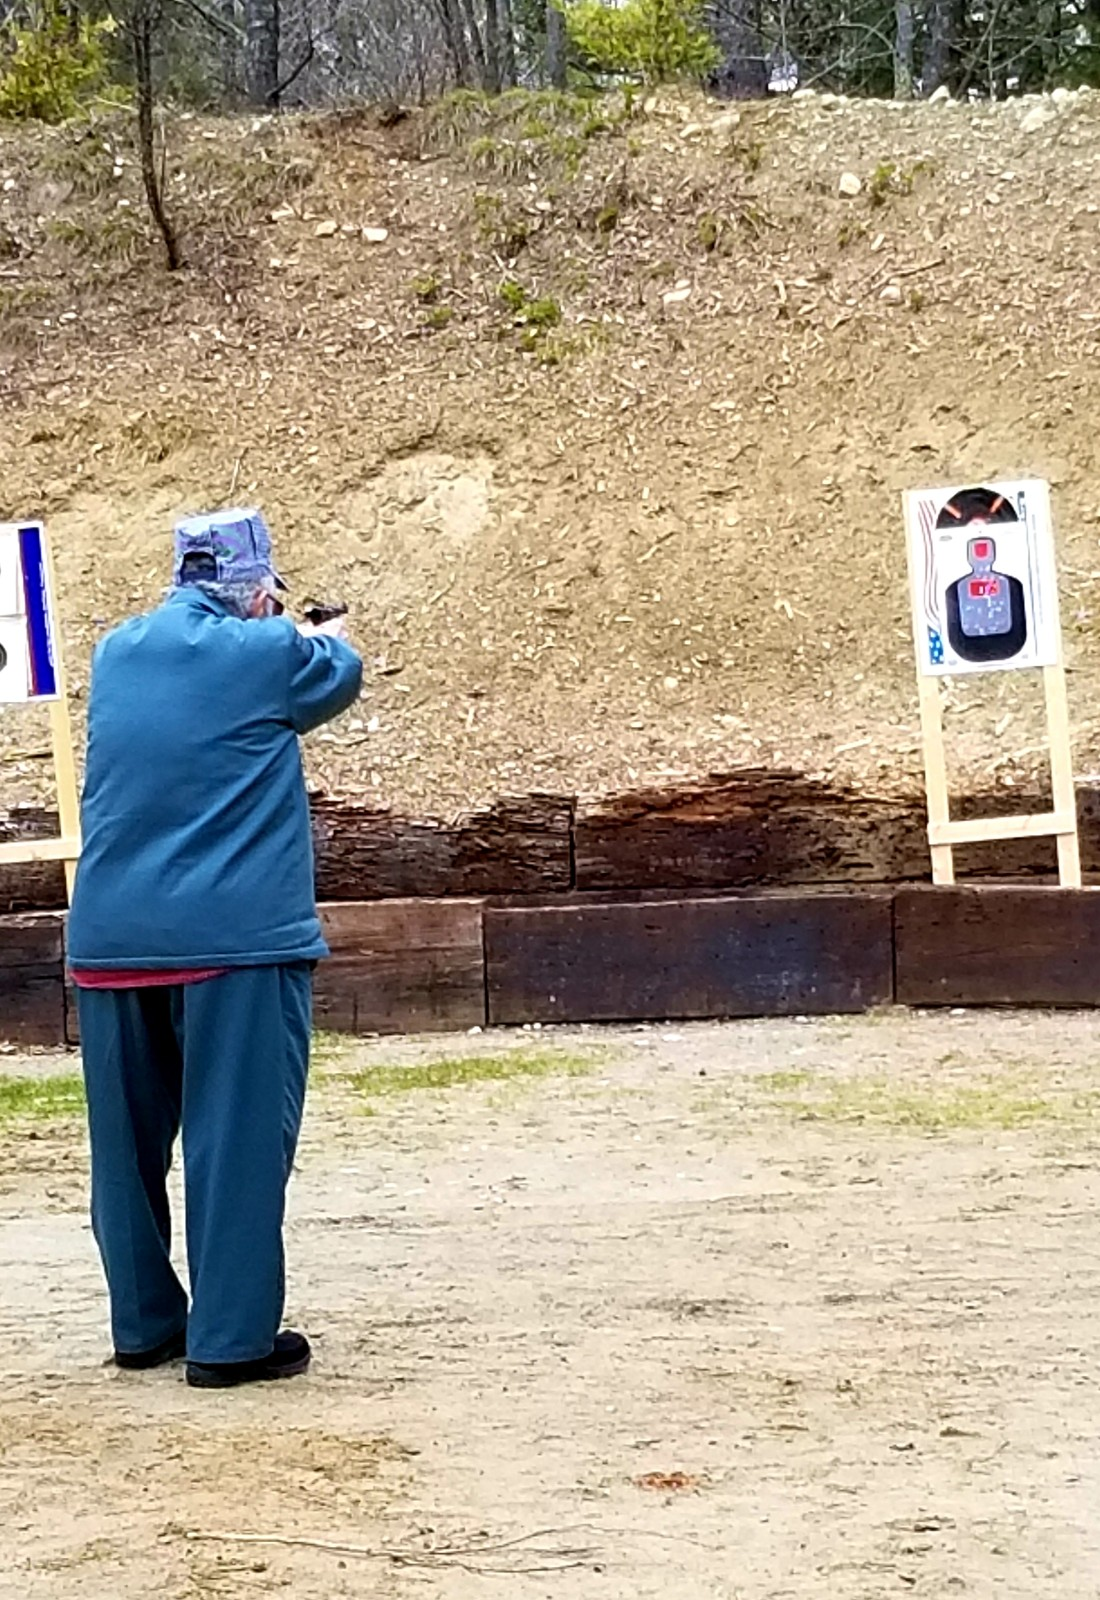 Larry shooting at targets 20200510 171329